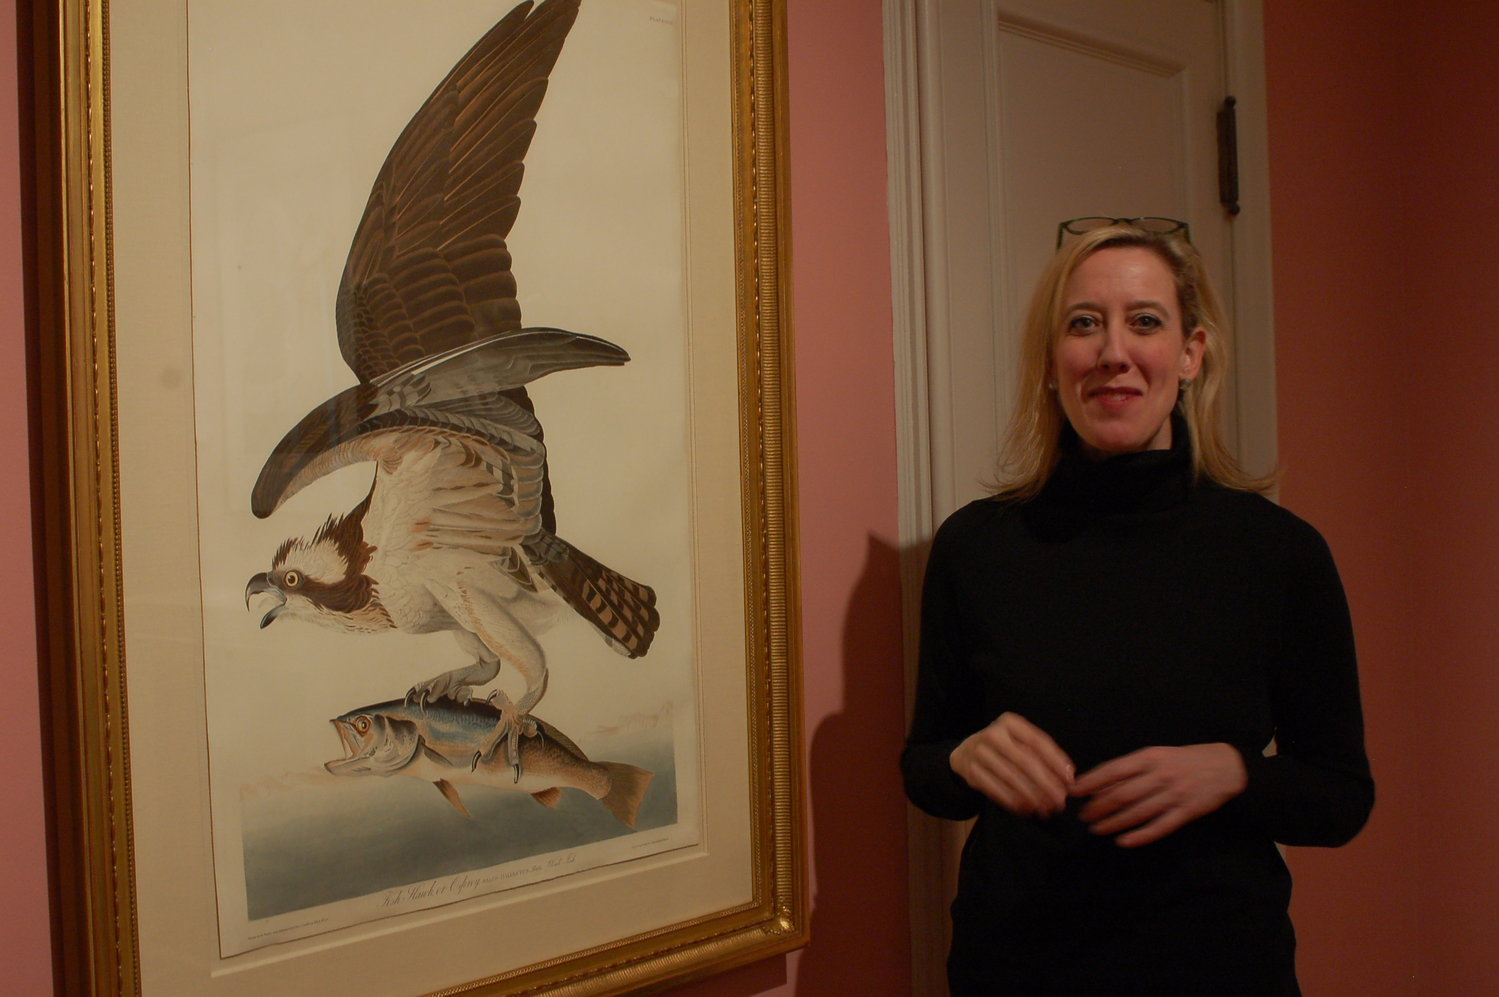 "'John James Audubon: Obsession Untamed', on display at Rosecliff through Nov. 3, is curated by Ashley Householder, Curator of Exhibitions for The Preservation Society of Newport County. The exhibition features 29 hand colored aquatints from Audubon's ""Birds of America""."